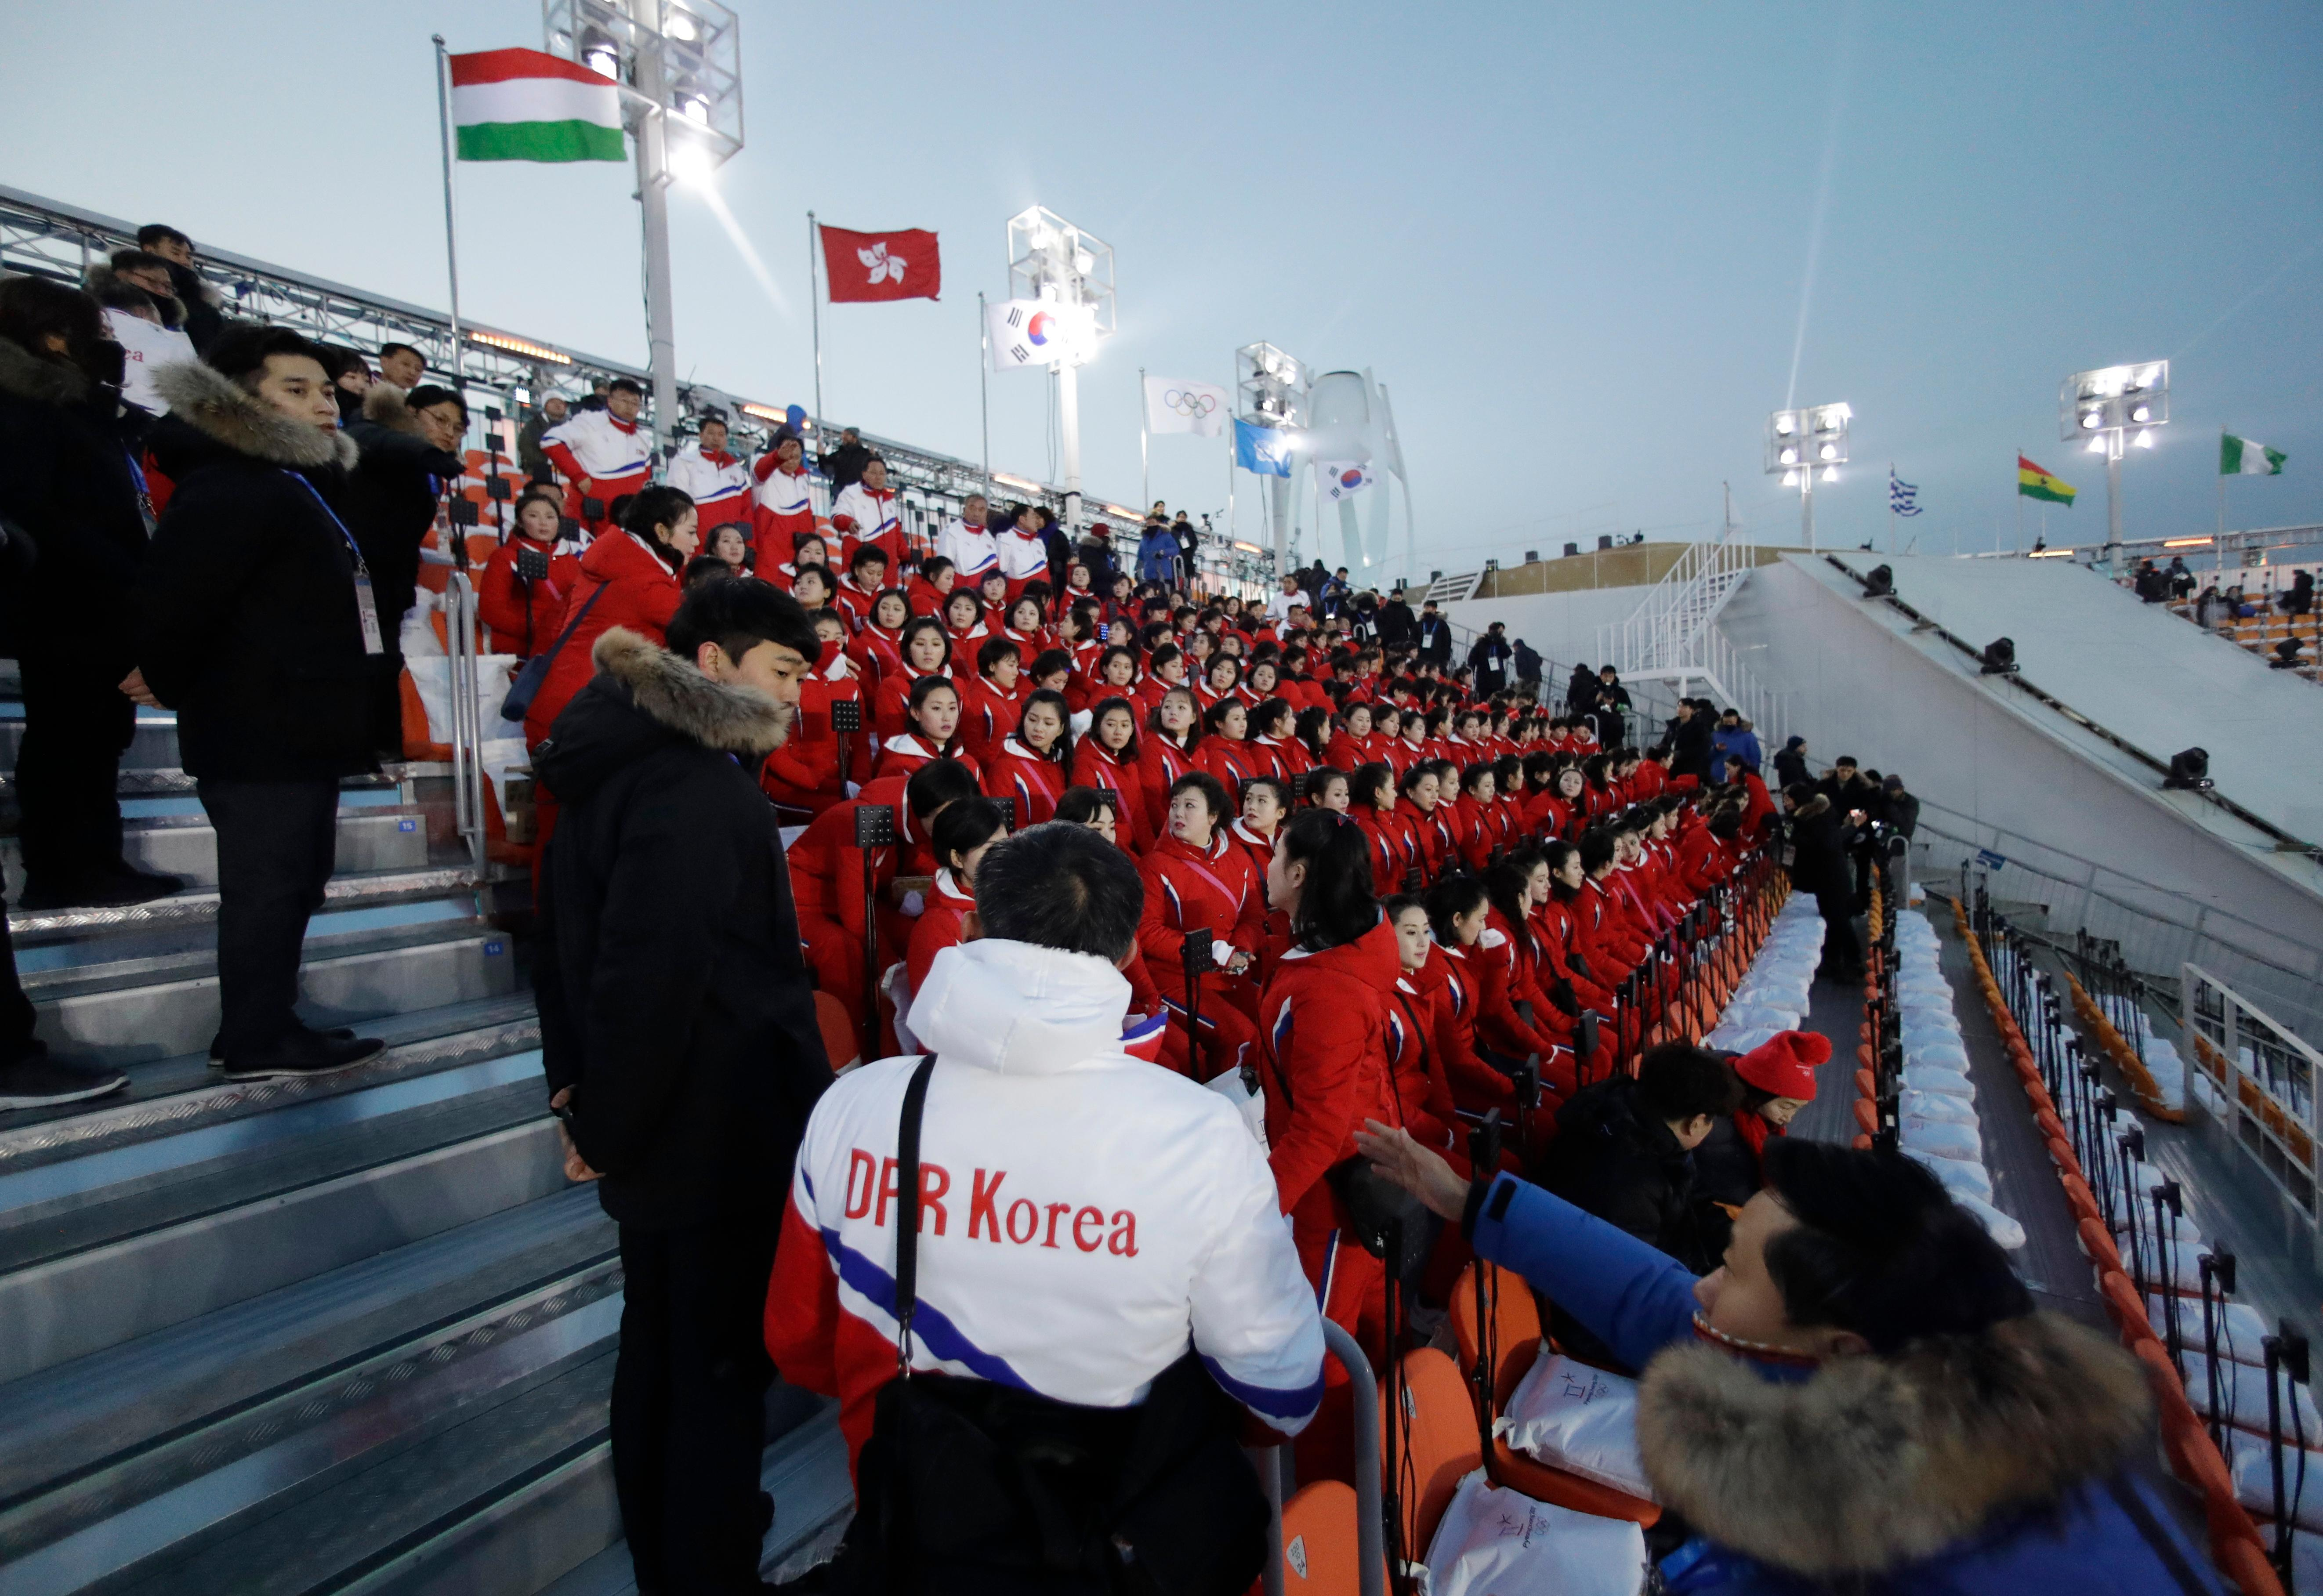 Members of the North Korean delegation sit before the opening ceremony of the 2018 Winter Olympics in Pyeongchang, South Korea, Friday, Feb. 9, 2018. (AP Photo/Matthias Schrader)